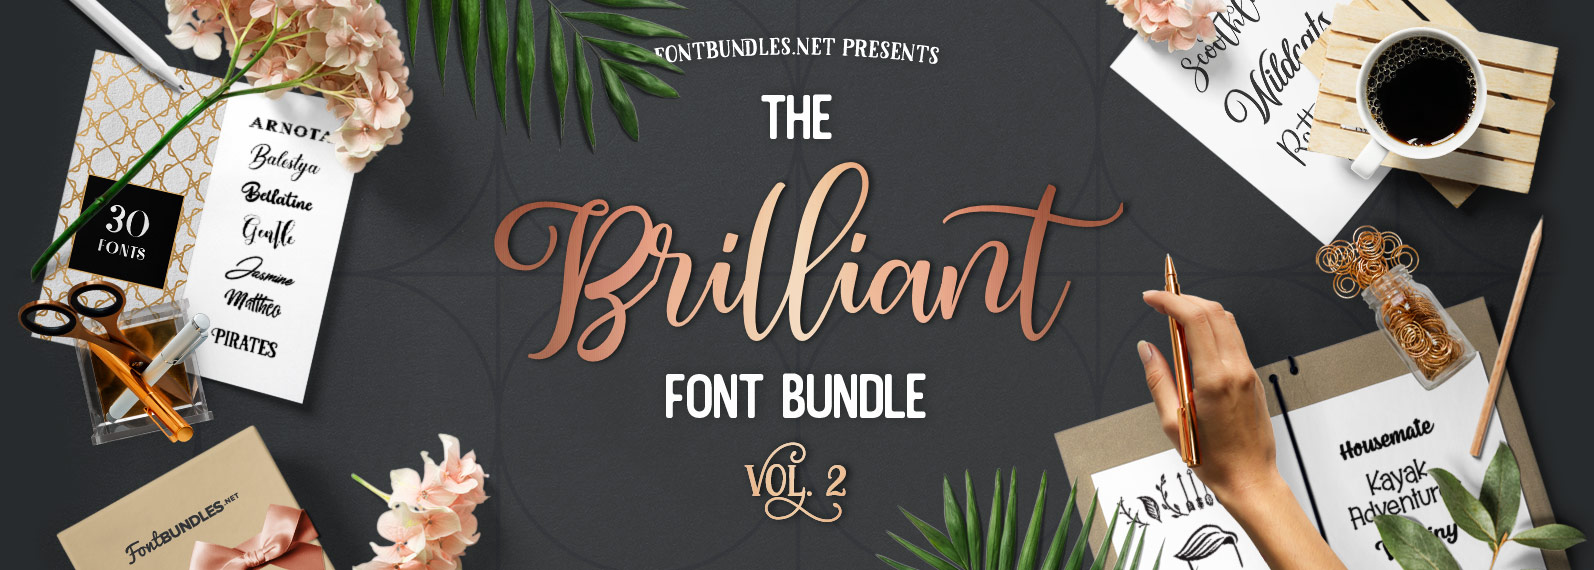 The Brilliant Font Bundle Volume II Cover